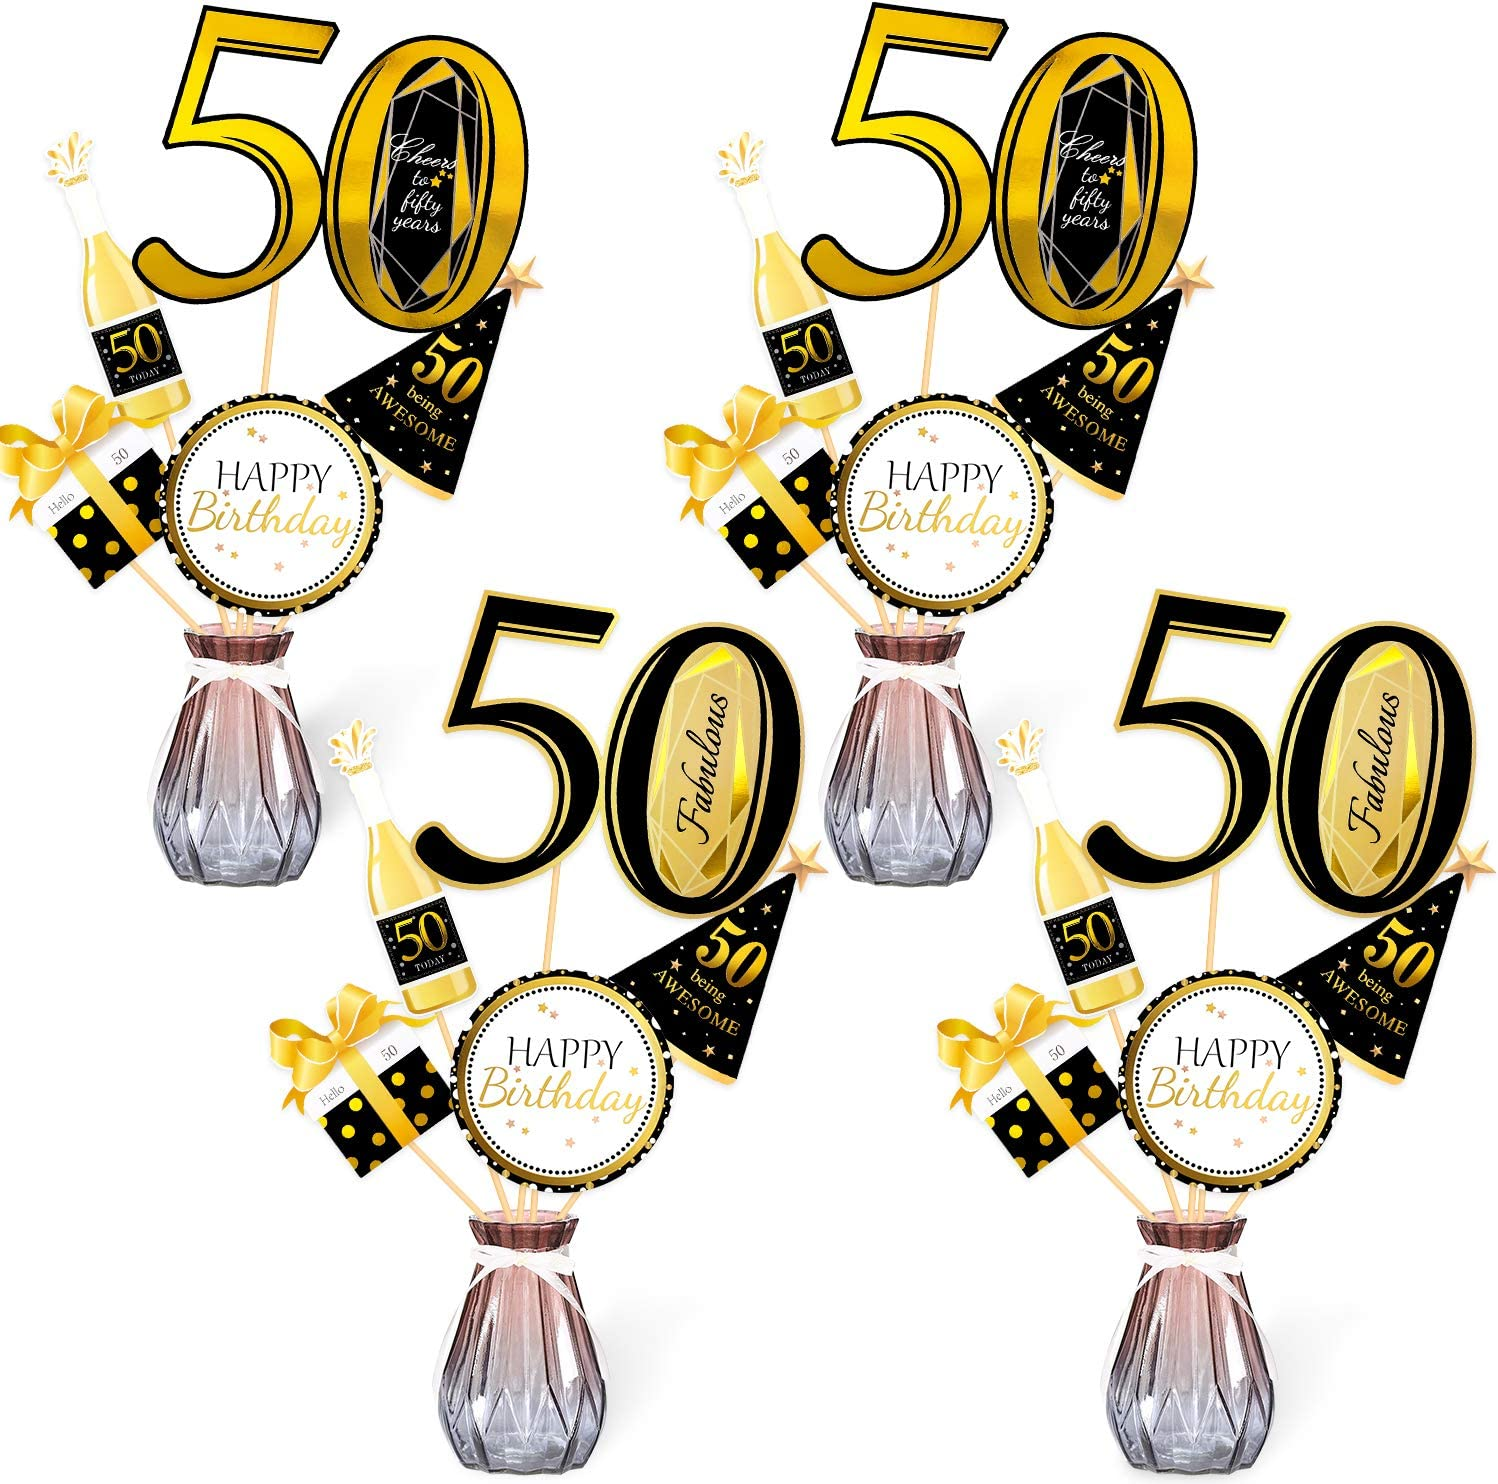 Konsait Black Gold 50th Birthday Centerpiece Sticks-50th Birthday Table Toppers -Birthday Party Decorations Accessories- 50 Fabulous -Bday Party Cheers to fifty Years Birthday Party Favor Table Supplies